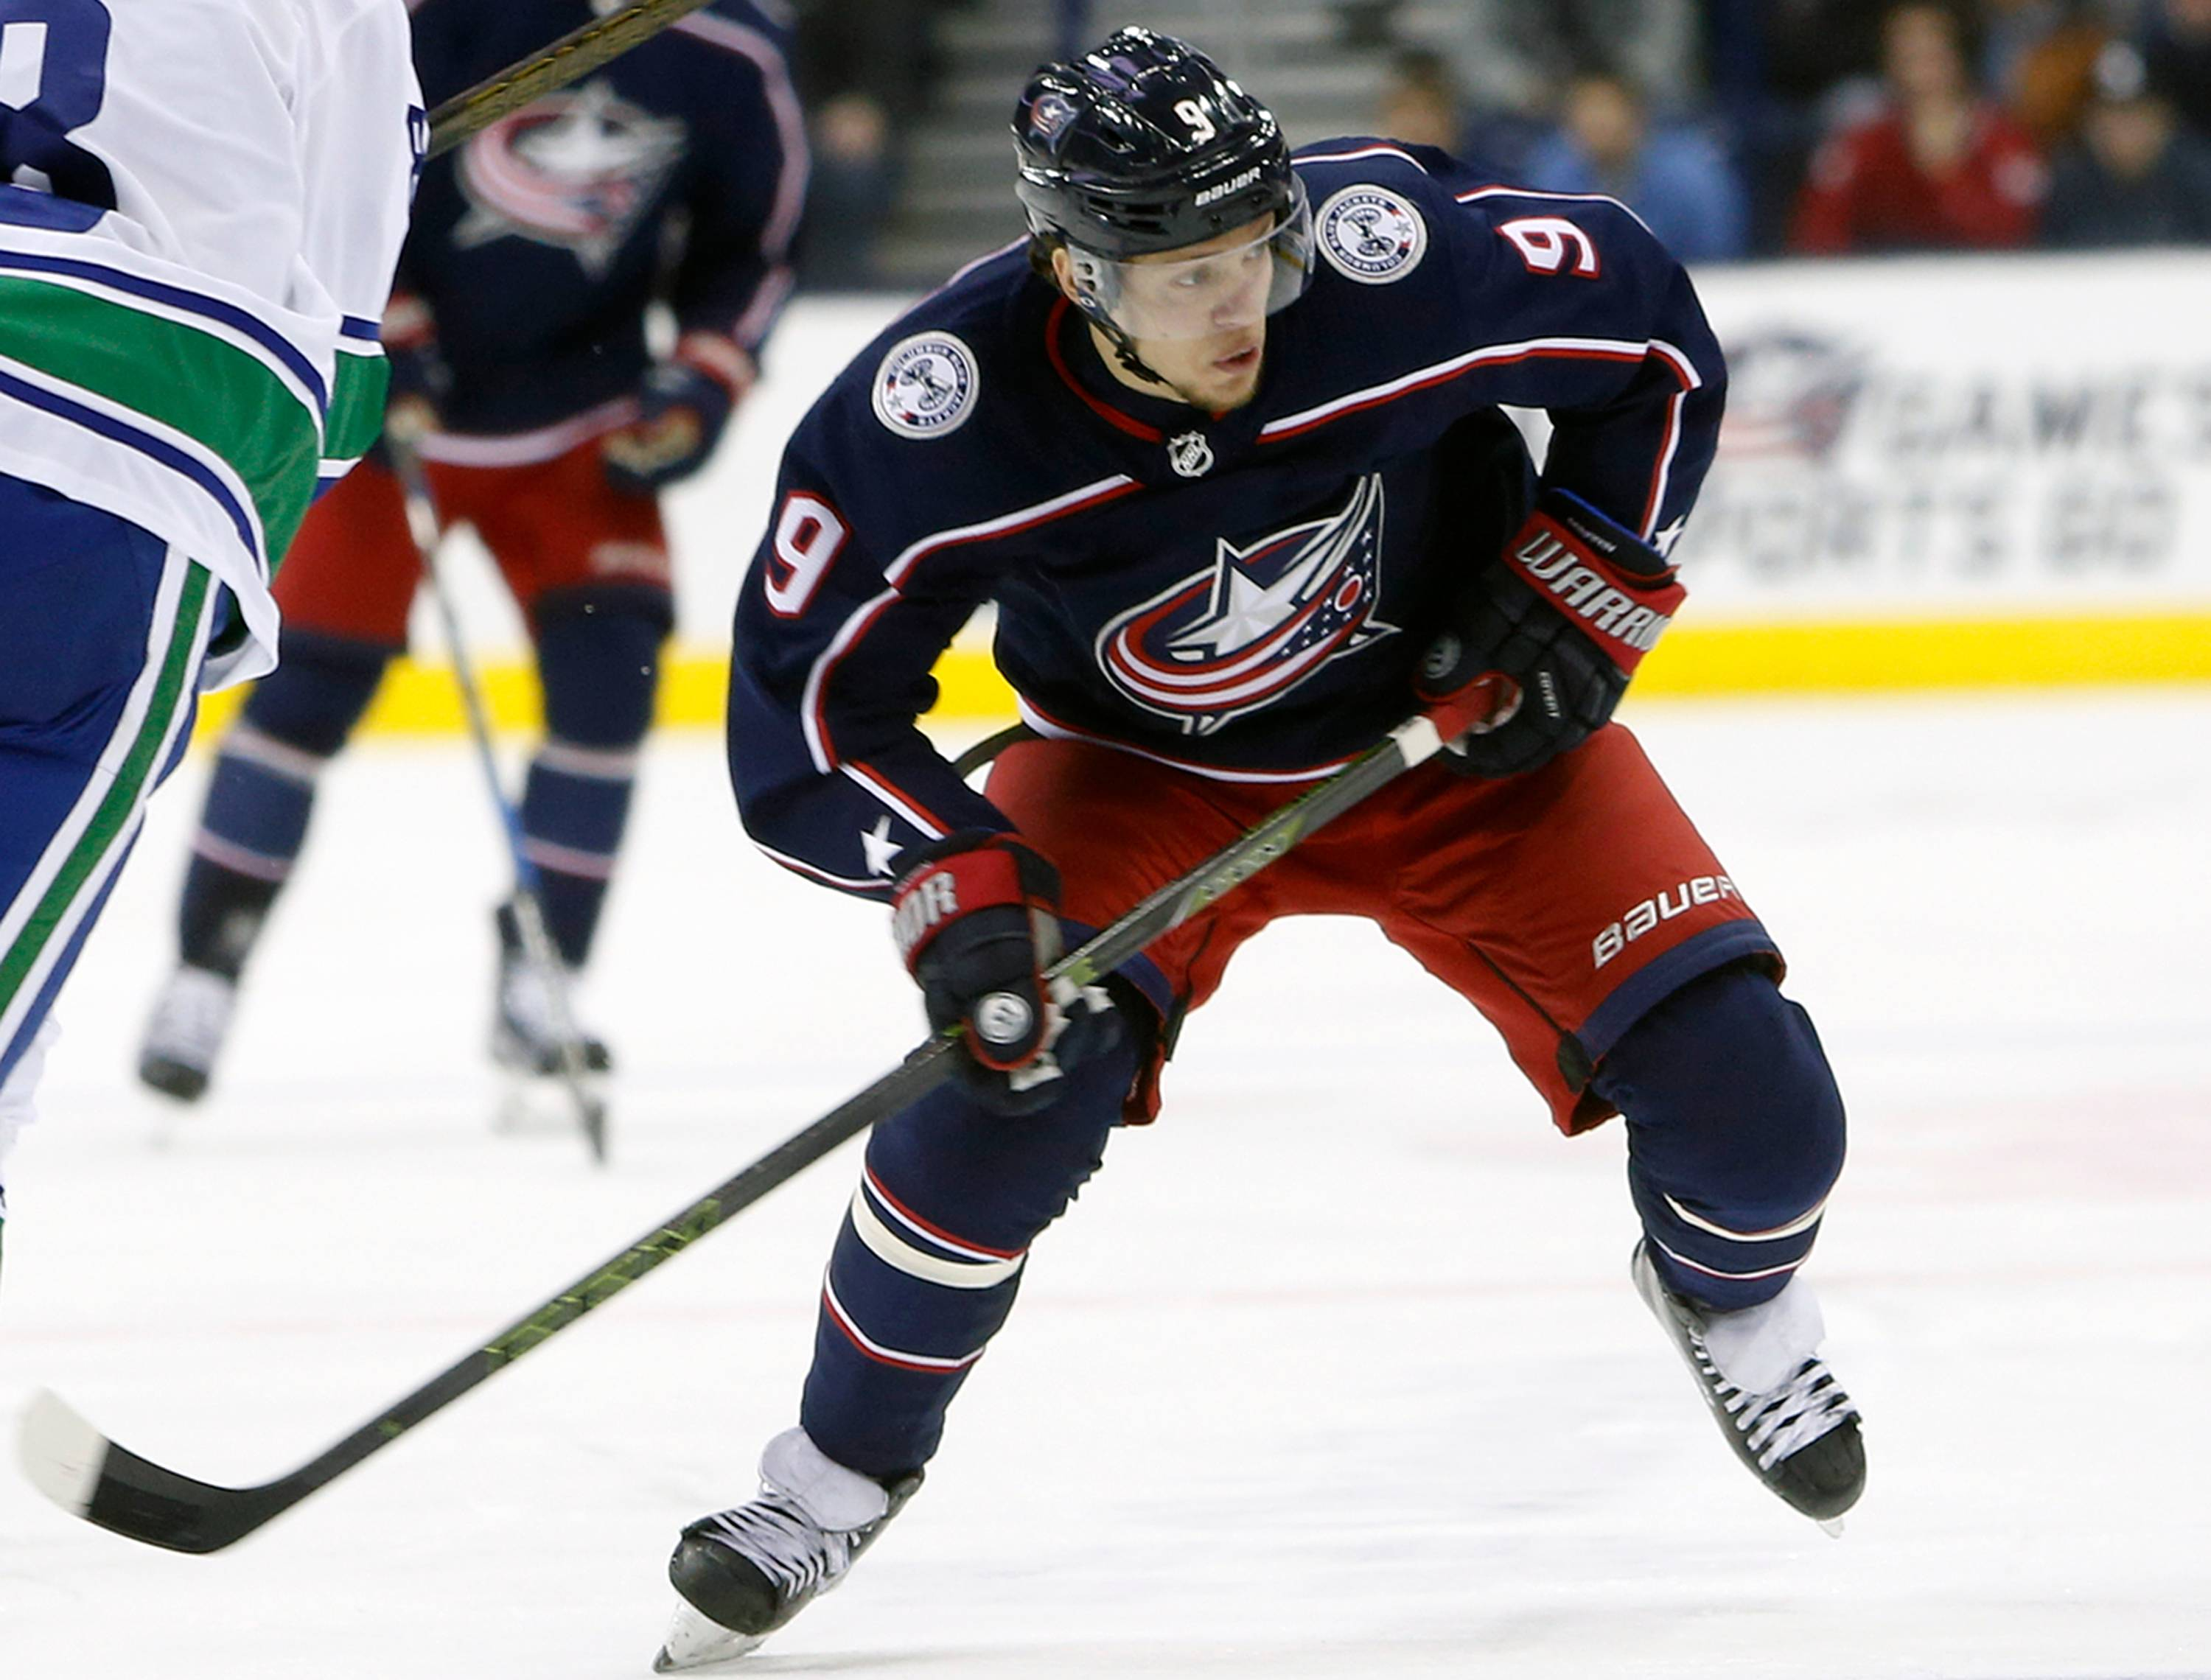 Columbus Blue Jackets' Artemi Panarin, of Russia, plays against the Vancouver Canucks during an NHL hockey game in Columbus, Ohio.